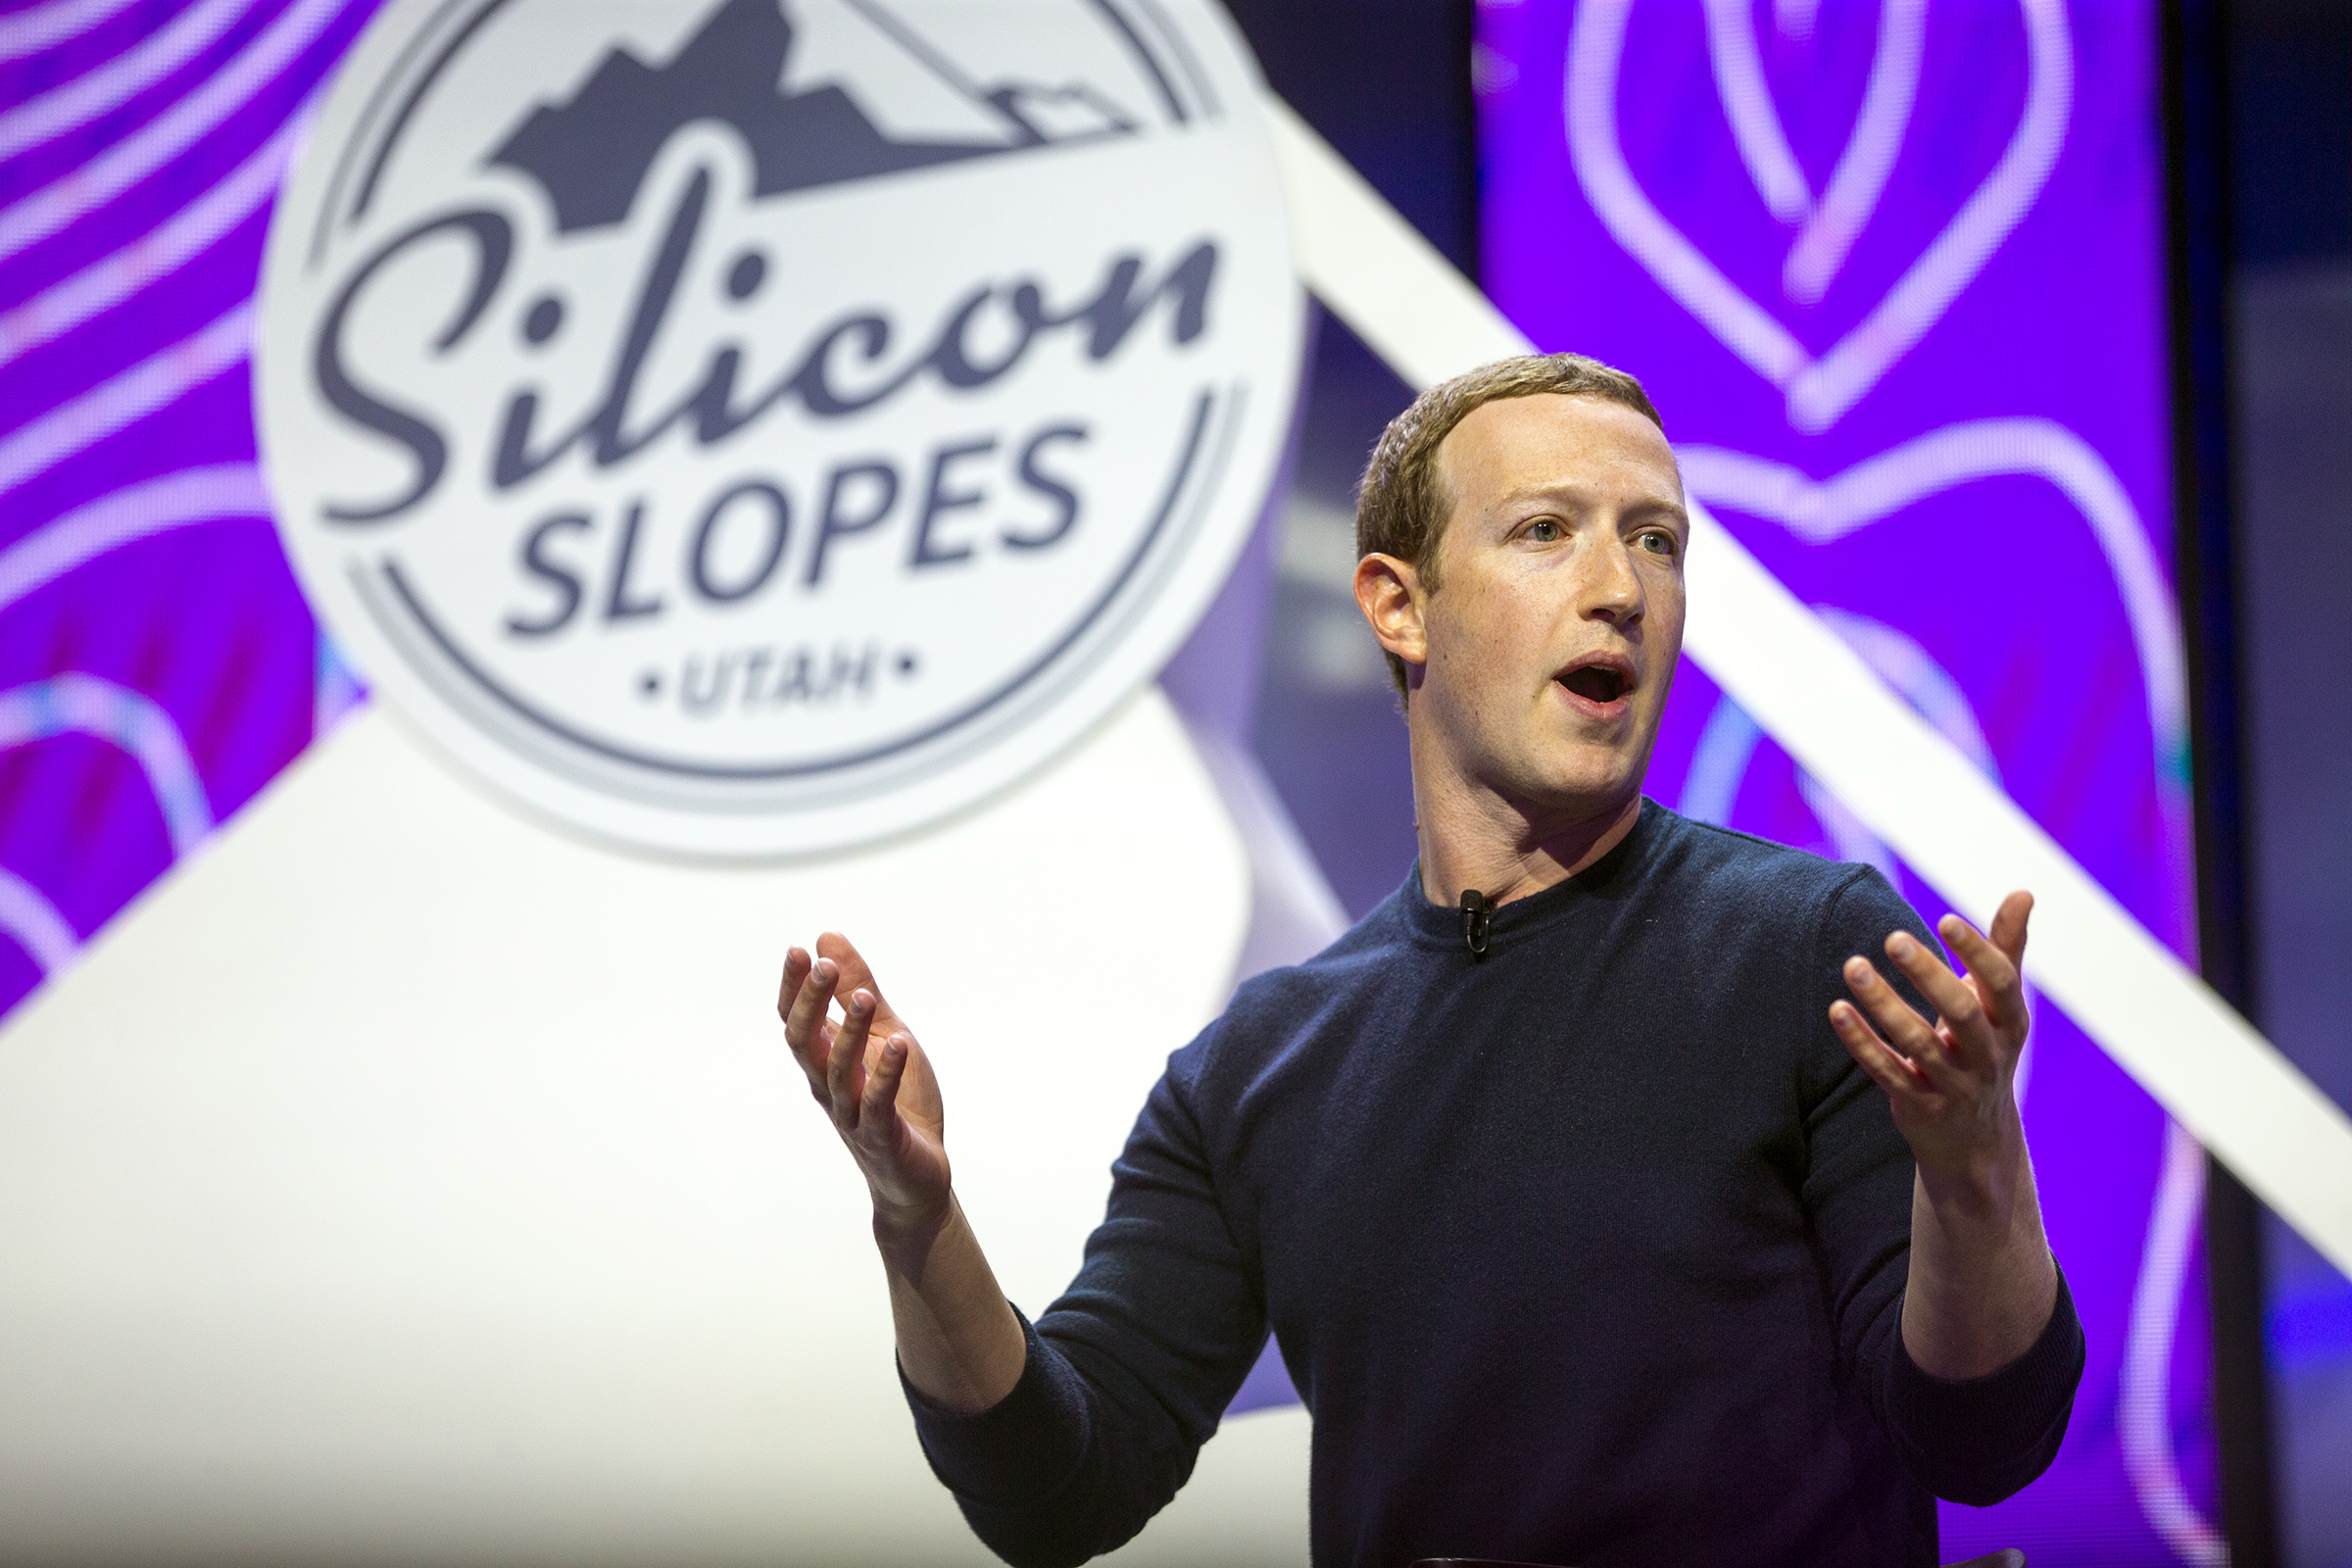 Mark Zuckerberg, founder and CEO of Facebook, speaks at the Silicon Slopes Tech Summit at the Salt Palace Convention Center in Salt Lake City on Friday, Jan. 31, 2020.